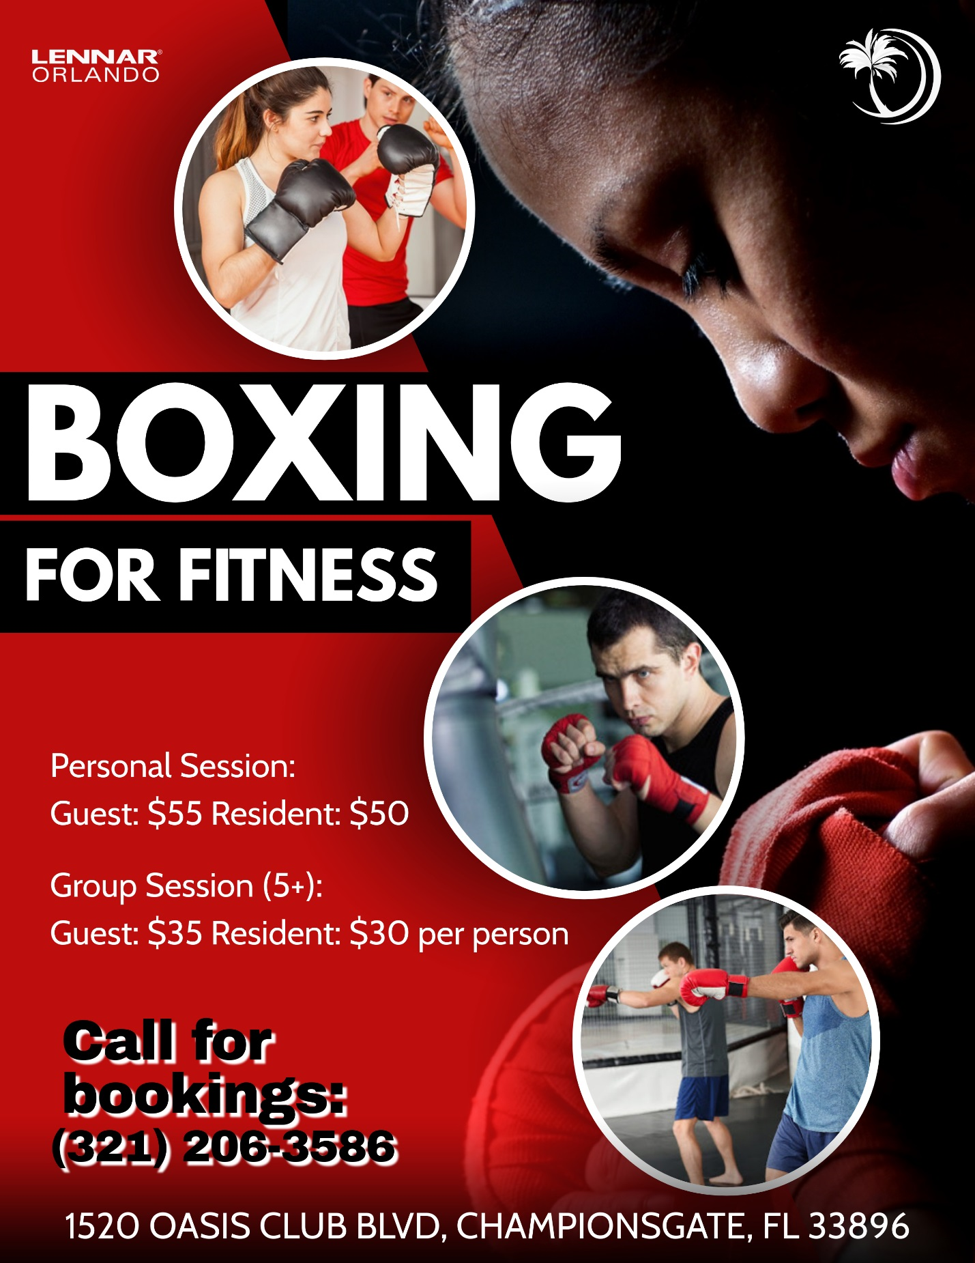 Boxing for Fitness Personal Session, Guest: $55, Resident:$50, Group Session (5+), Guest: $35, Resident: $30 per person. Call for booking: 321-206-3586, 1520 Oasis Club Blvd, Championsgate FL, 33896, 407-507-2800